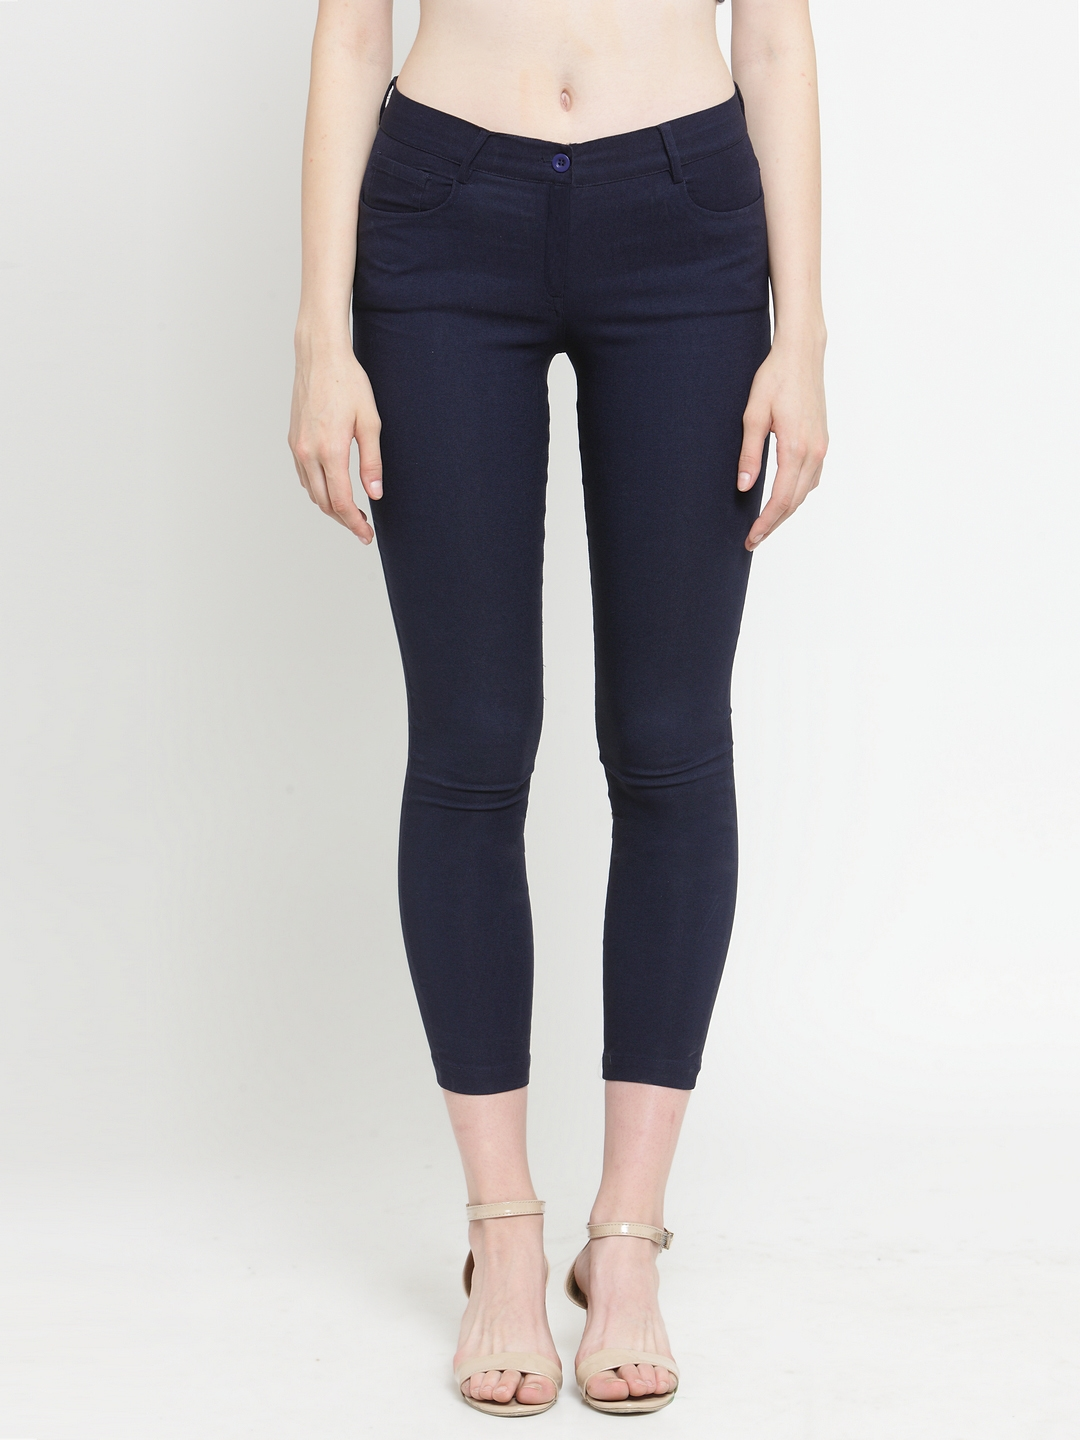 pretty cheap new style of 2019 world-wide selection of Purplicious Women Navy Blue Solid Three-Fourth Length Jeggings